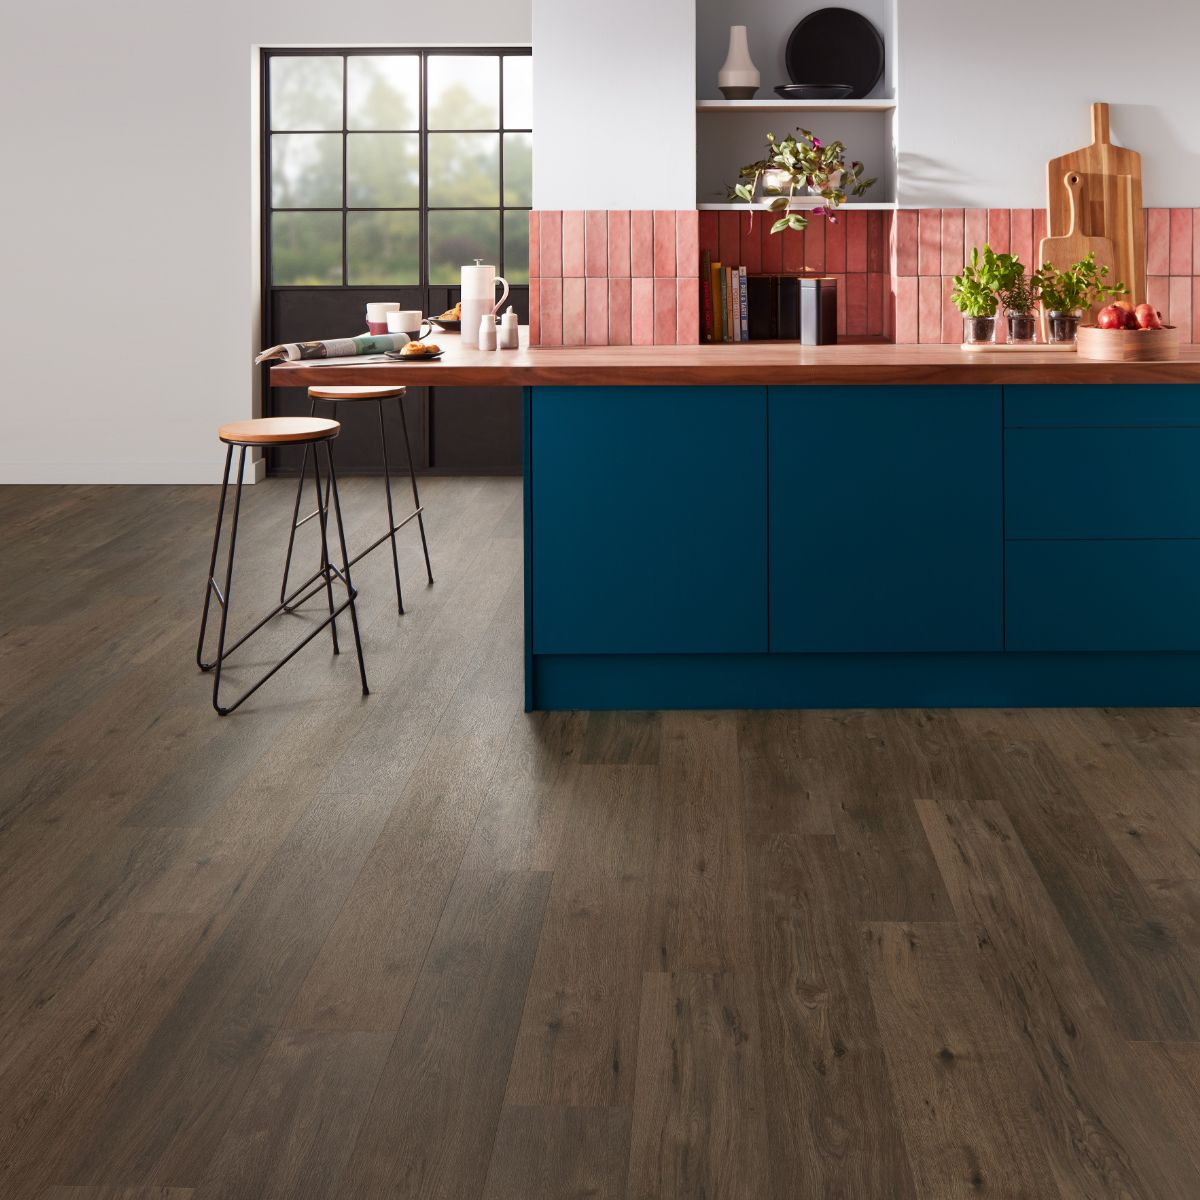 Not all flooring solutions are equal when it comes to the best ...